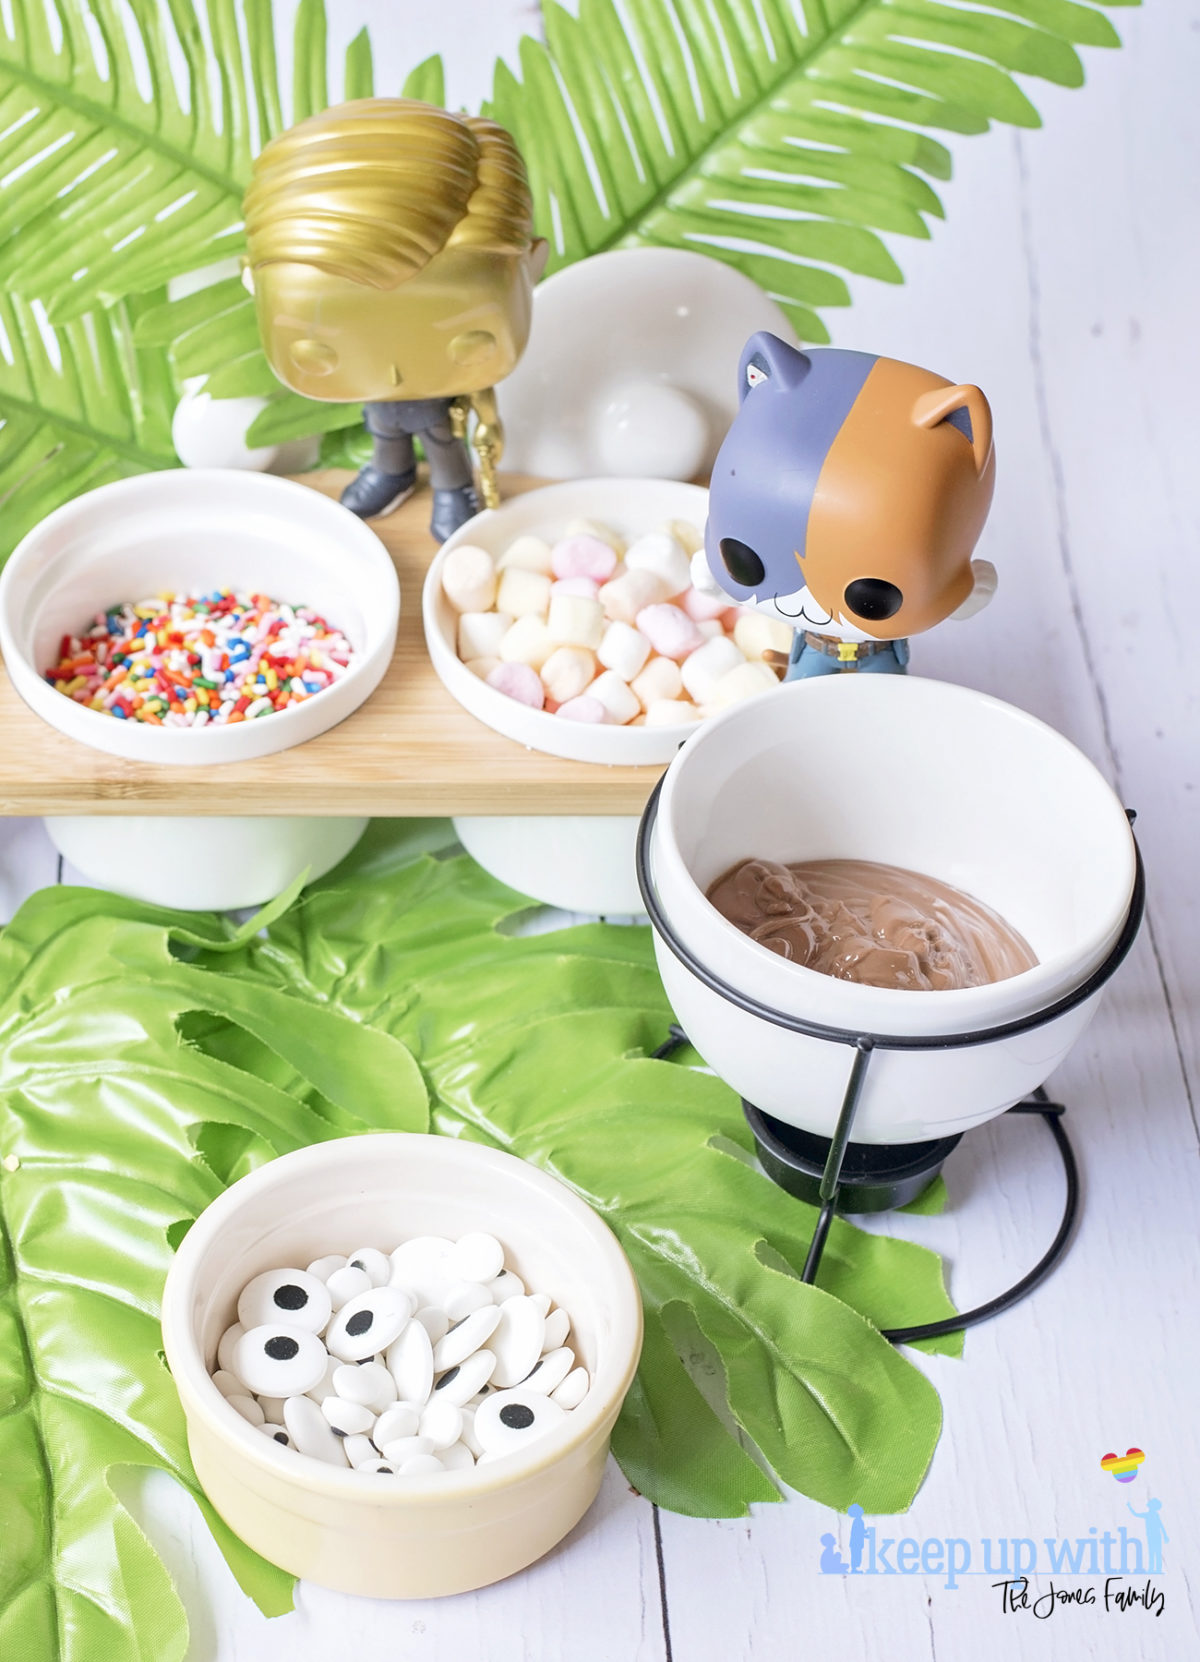 Image shows Peely's Banana Fortnite Fondue Bar, fun food for families. A Funko Pop Vinyl Meowscles and Midas stand on a fondue bar next to dishes of fondue toppings including edible eyes, sprinkles, mini marshmallows and peanut butter drops. Image by Sara-Jayne from Keep Up With The Jones Family.